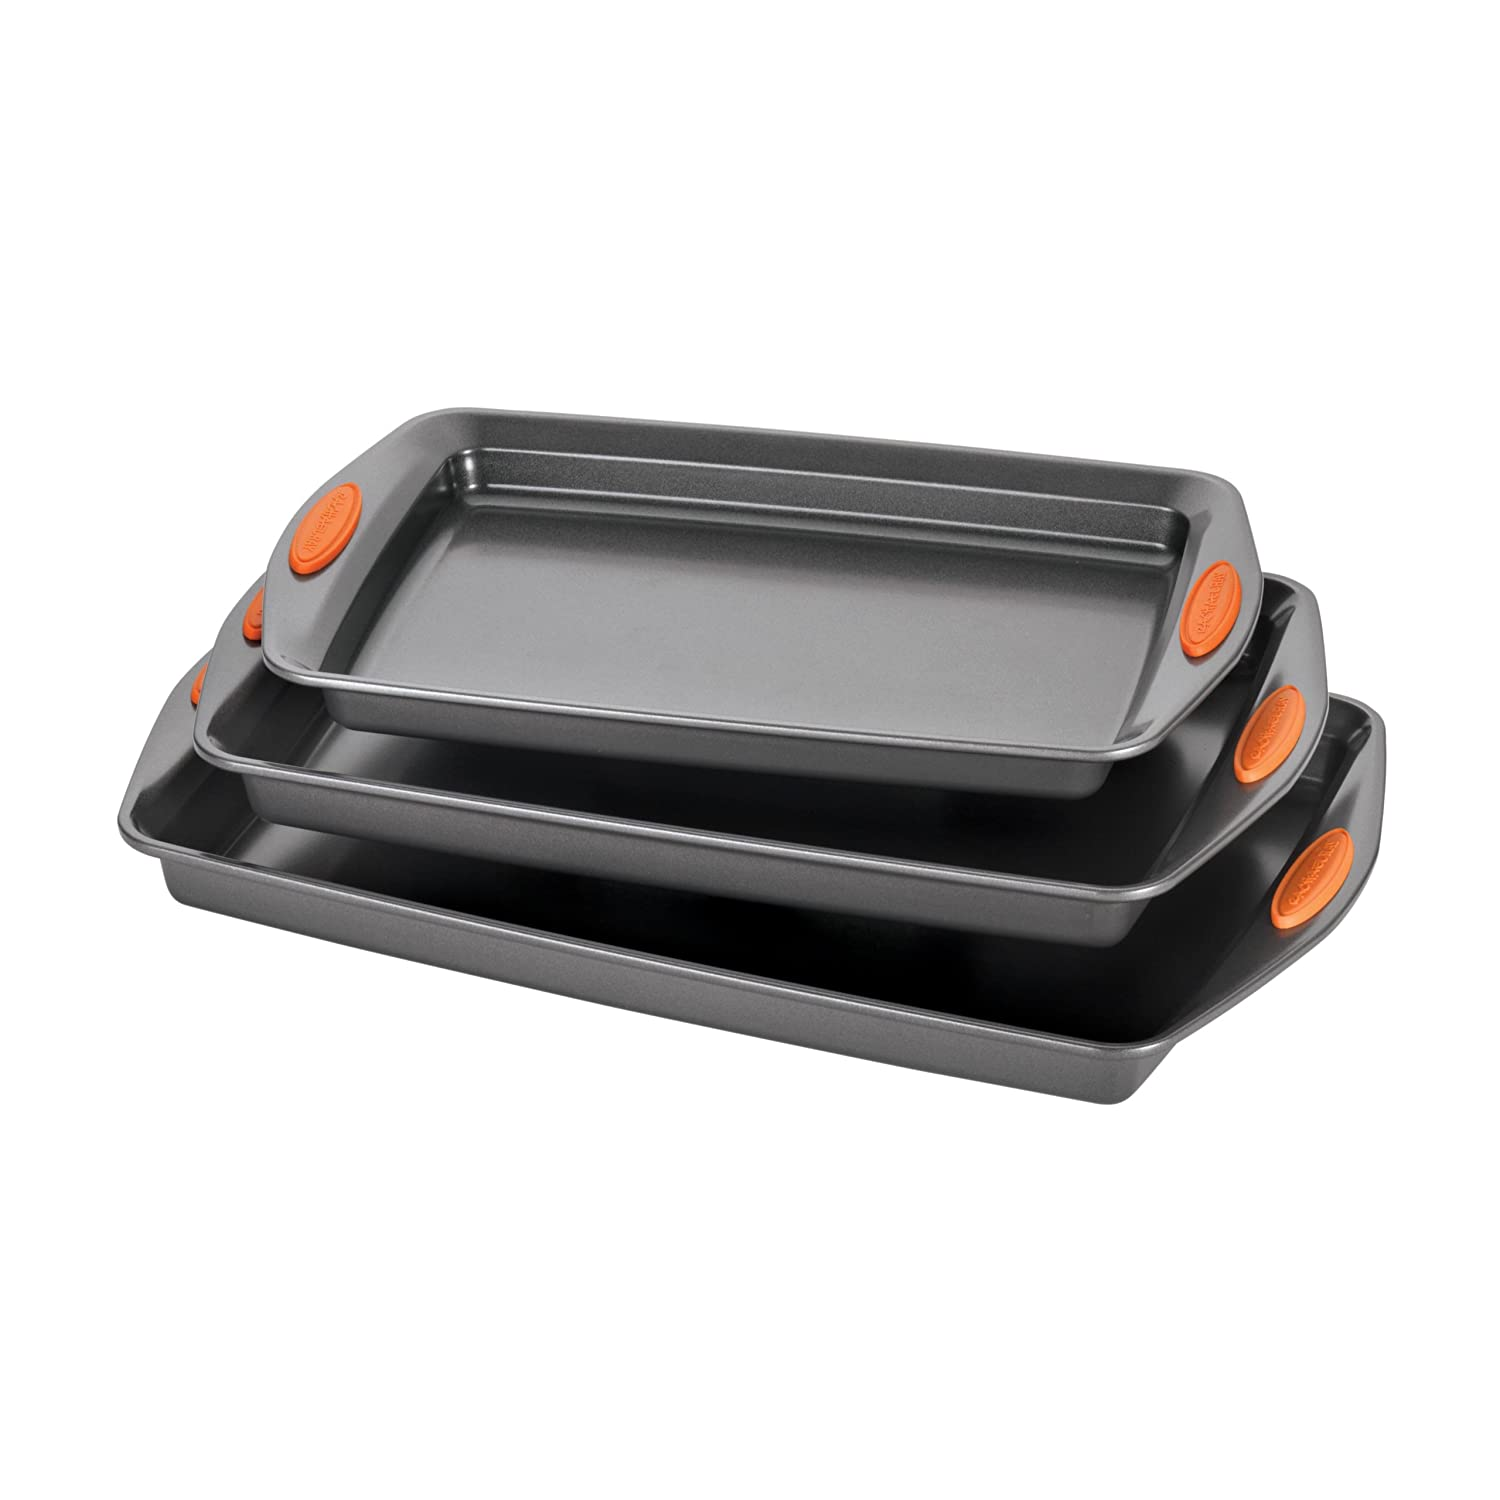 Rachael Ray Oven Lovin' Nonstick Bakeware 3-Piece Baking and Cookie